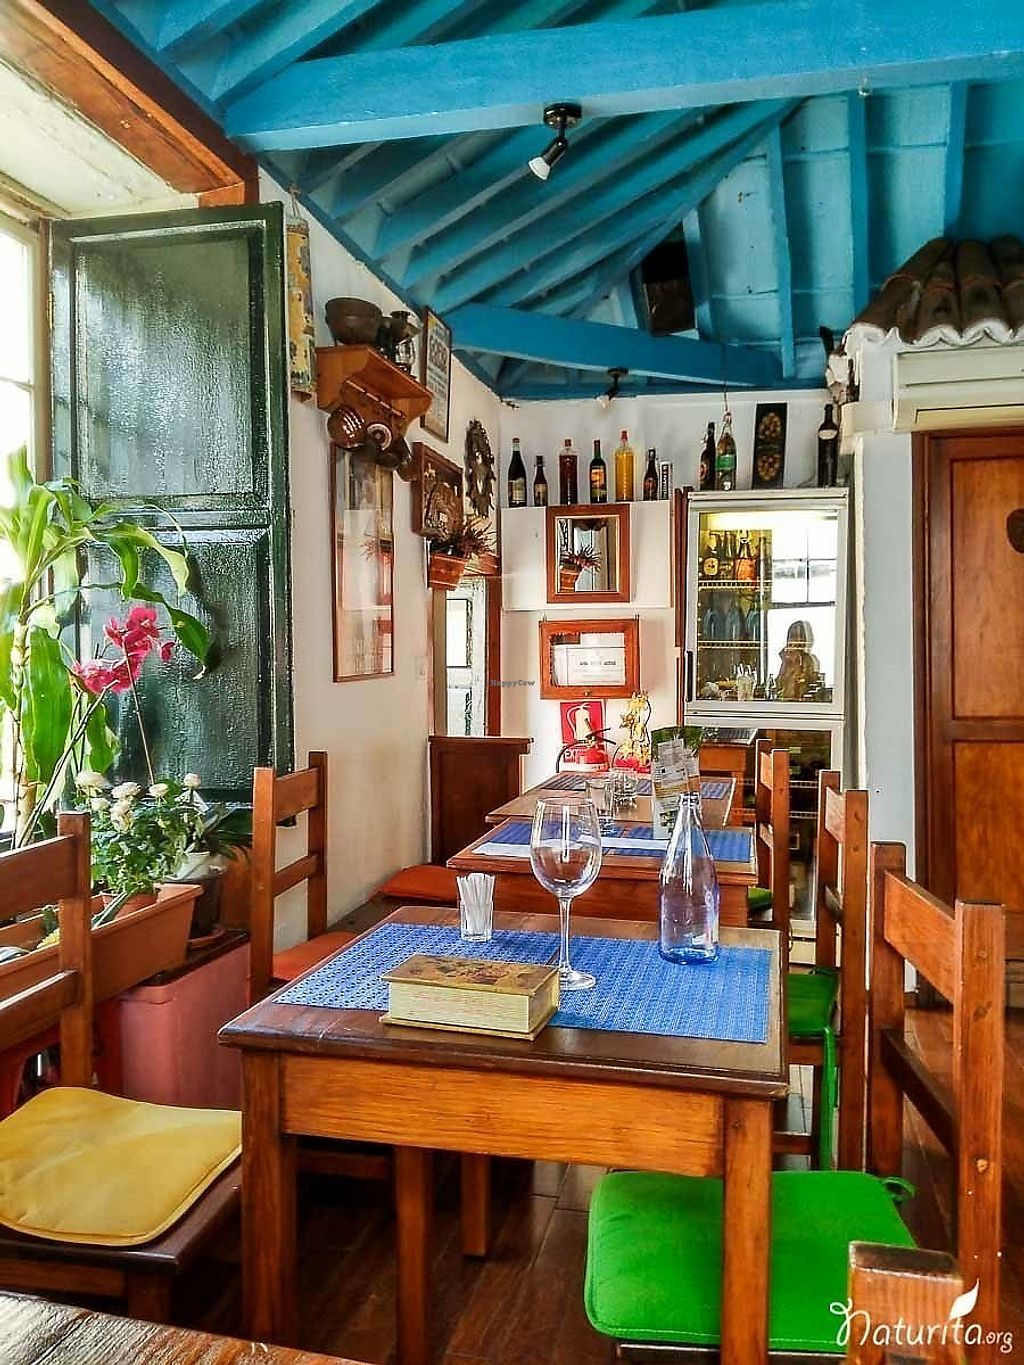 """Photo of Enriclai  by <a href=""""/members/profile/Naturita"""">Naturita</a> <br/>The restaurant is located in an old tipical canarian house <br/> January 17, 2018  - <a href='/contact/abuse/image/109674/347785'>Report</a>"""